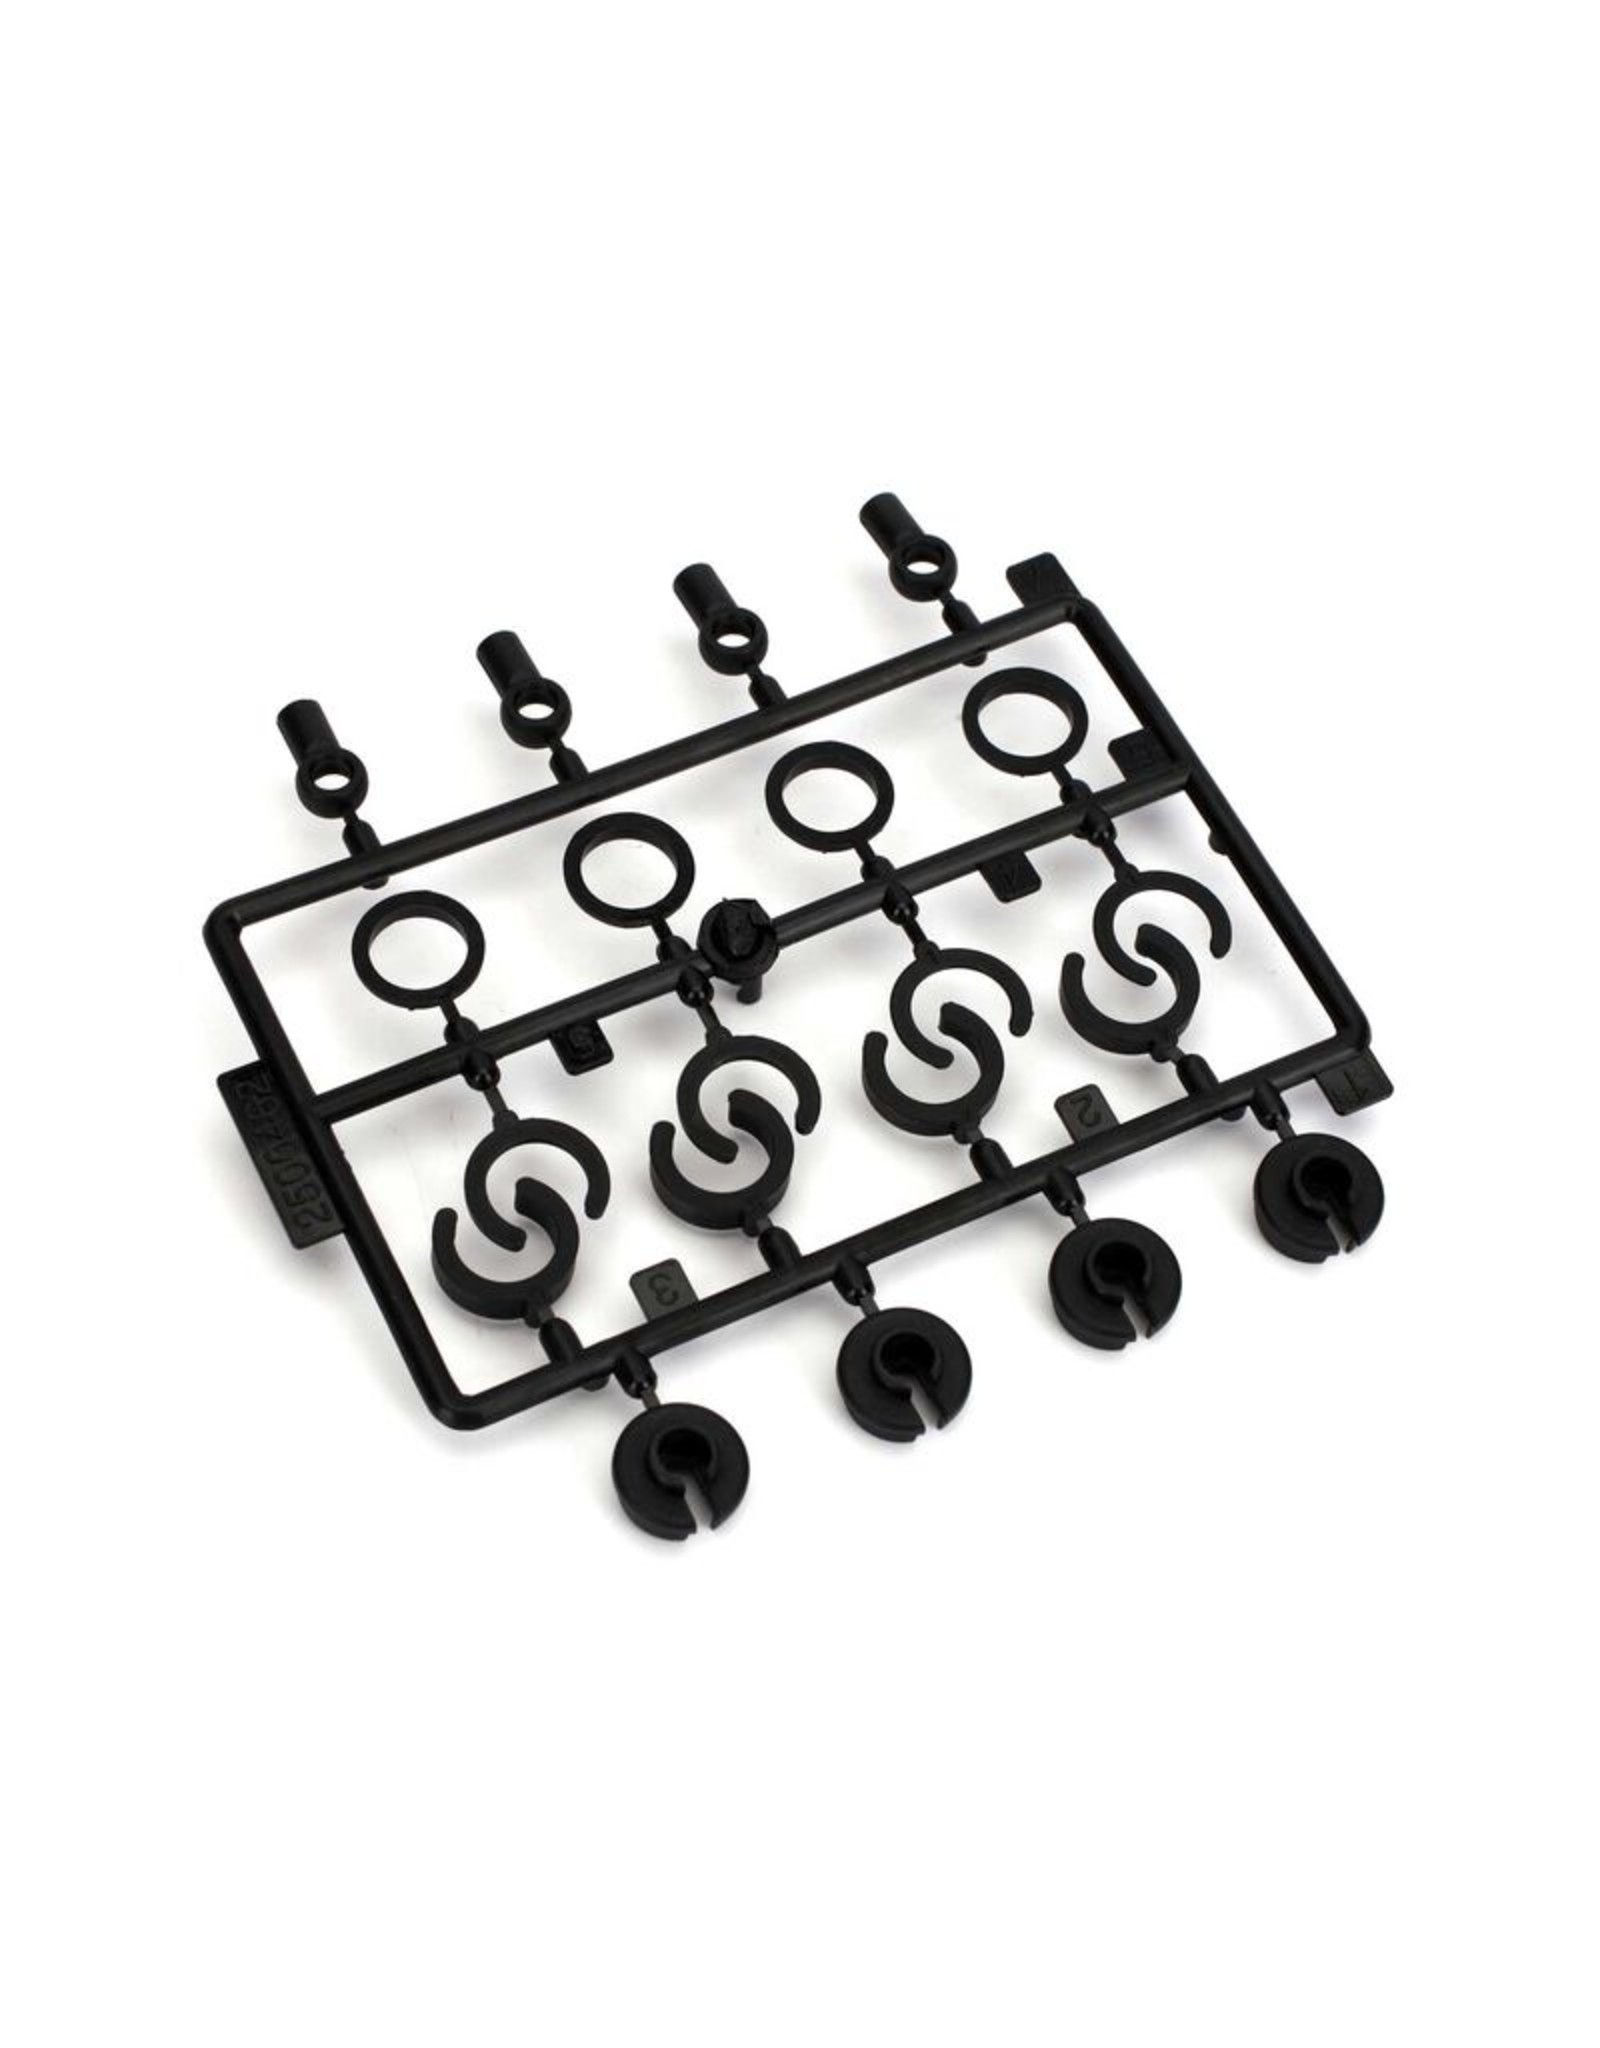 ECX 1038 - Shock End, Spring Cup, Spring Clip Set: All ECX 1/10 2WD